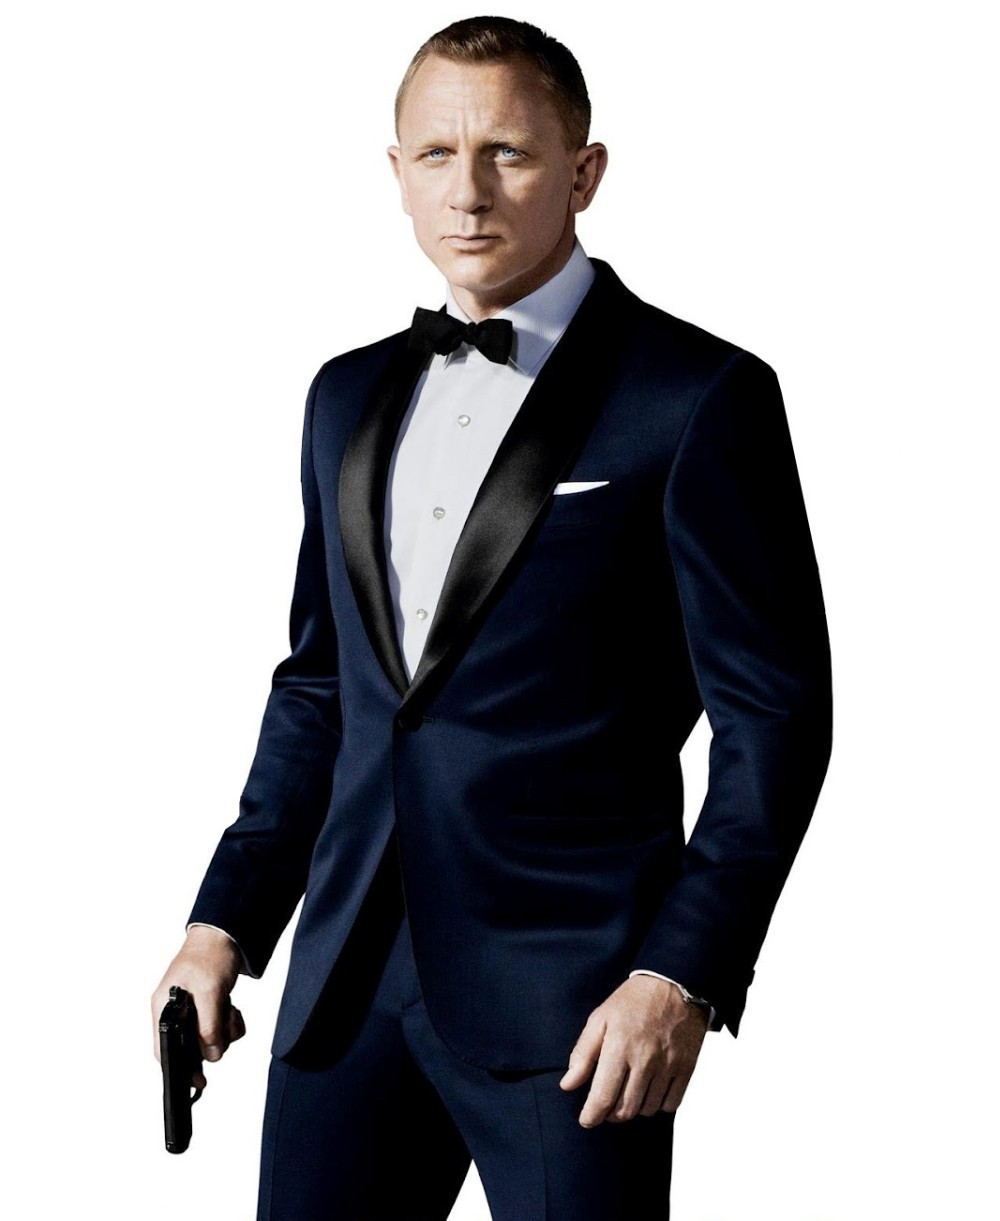 Top Quality Custom Made Dark Blue Groom Tuxedos Suit Worn In James Bond Wedding Suits For Men Prom Jacket Pants Bow Black From Mens Clothing